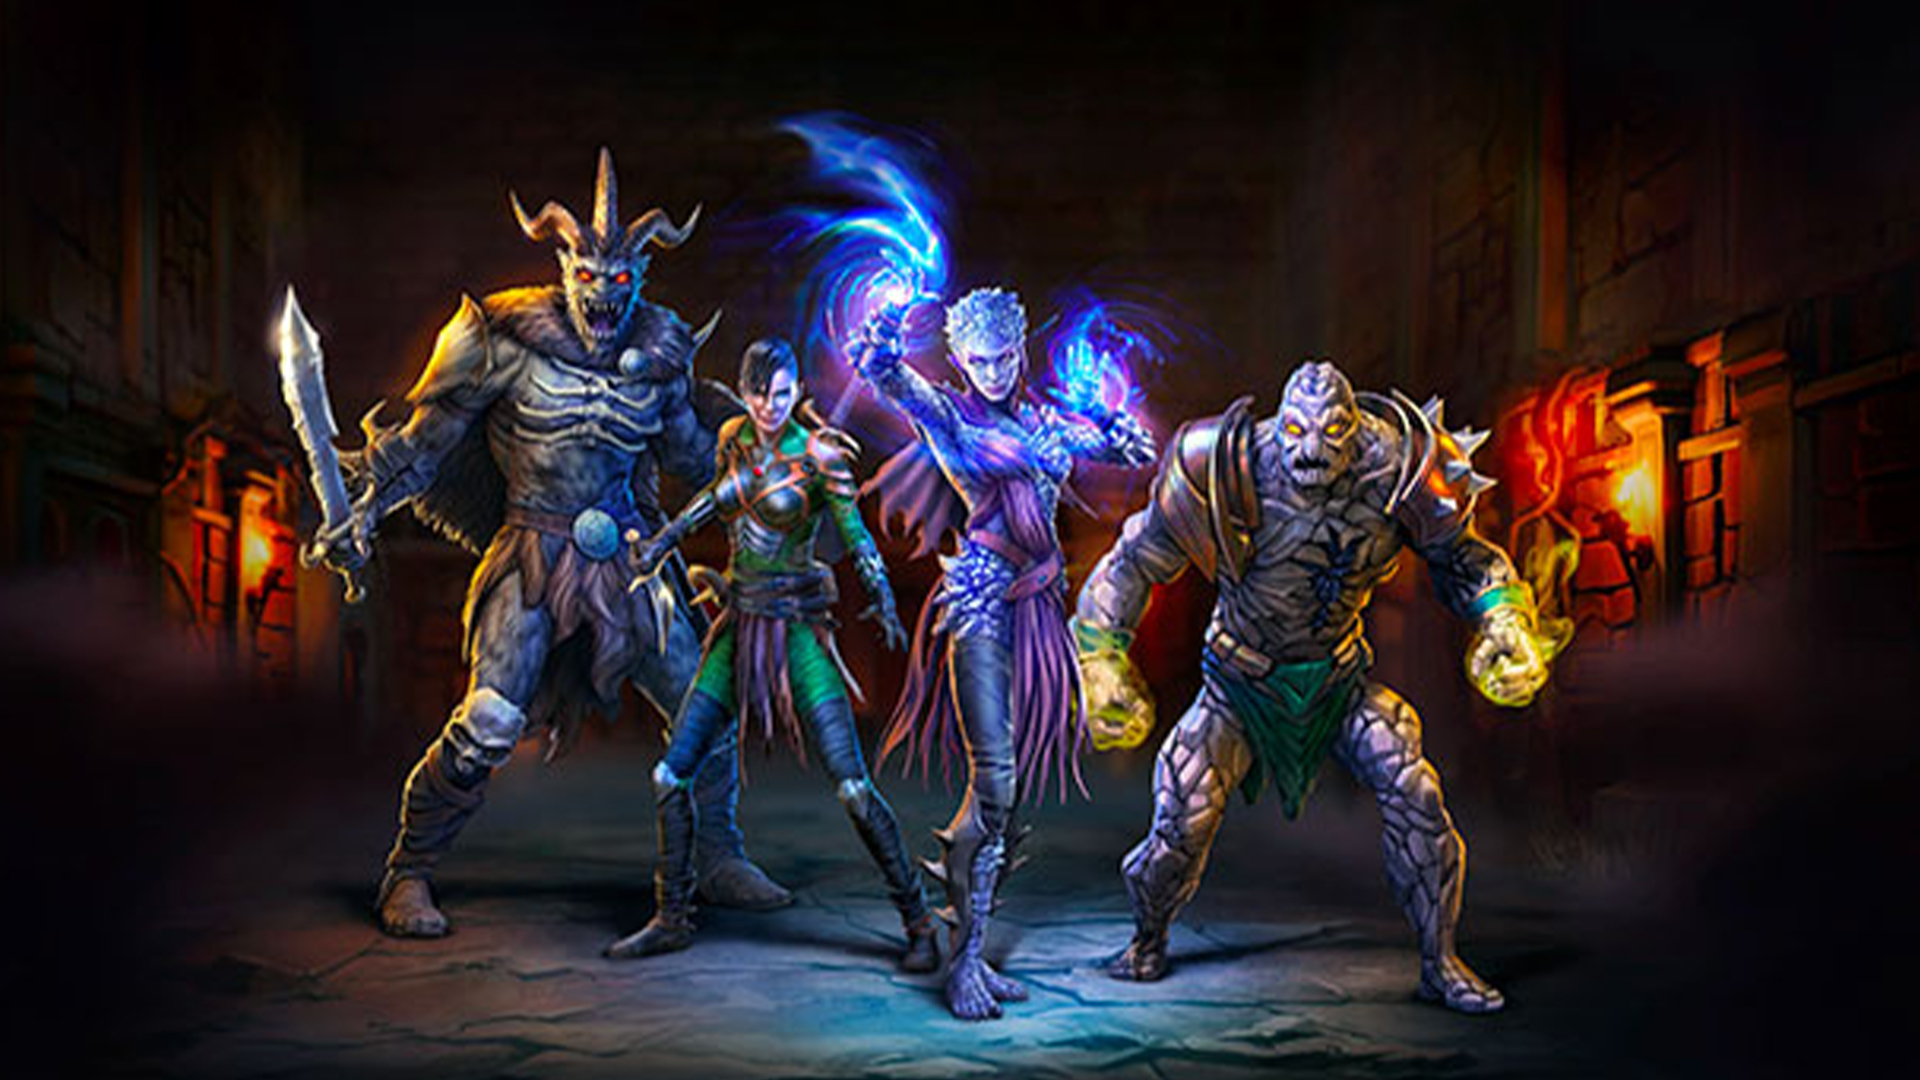 Former Fable dev's procedural generation tech helped bring Gloomhaven to PC